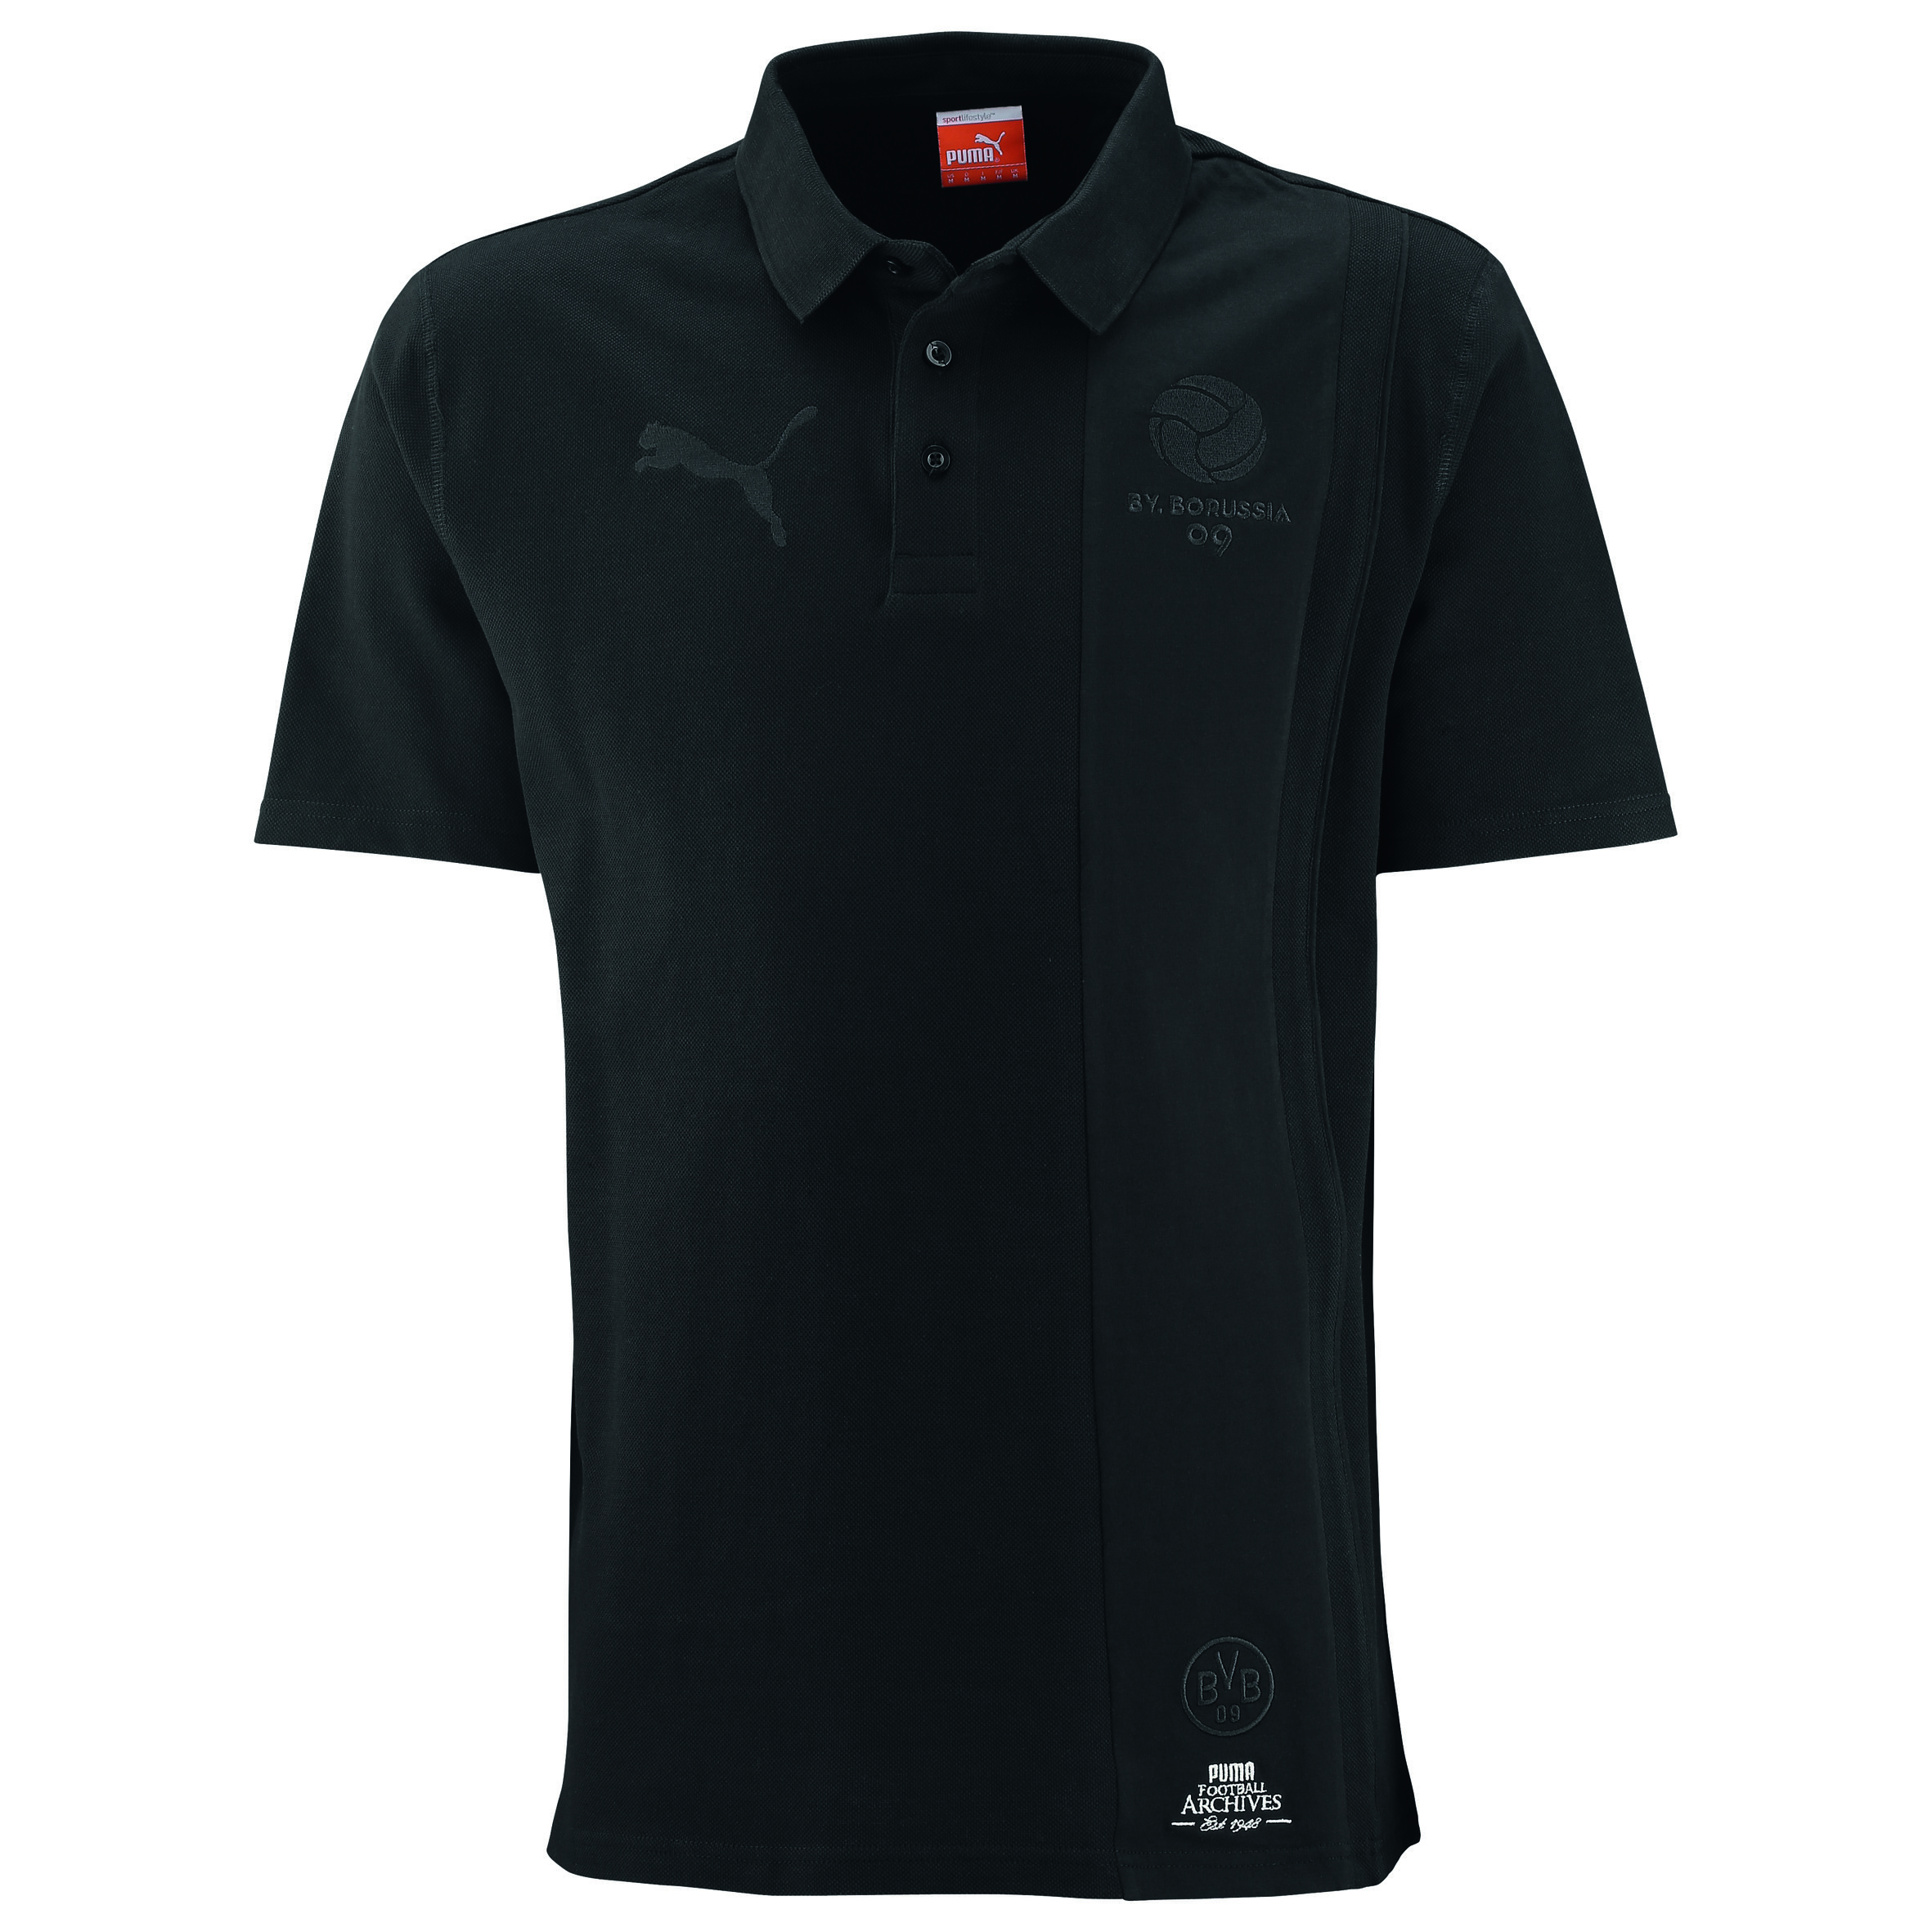 BVB Archives Polo